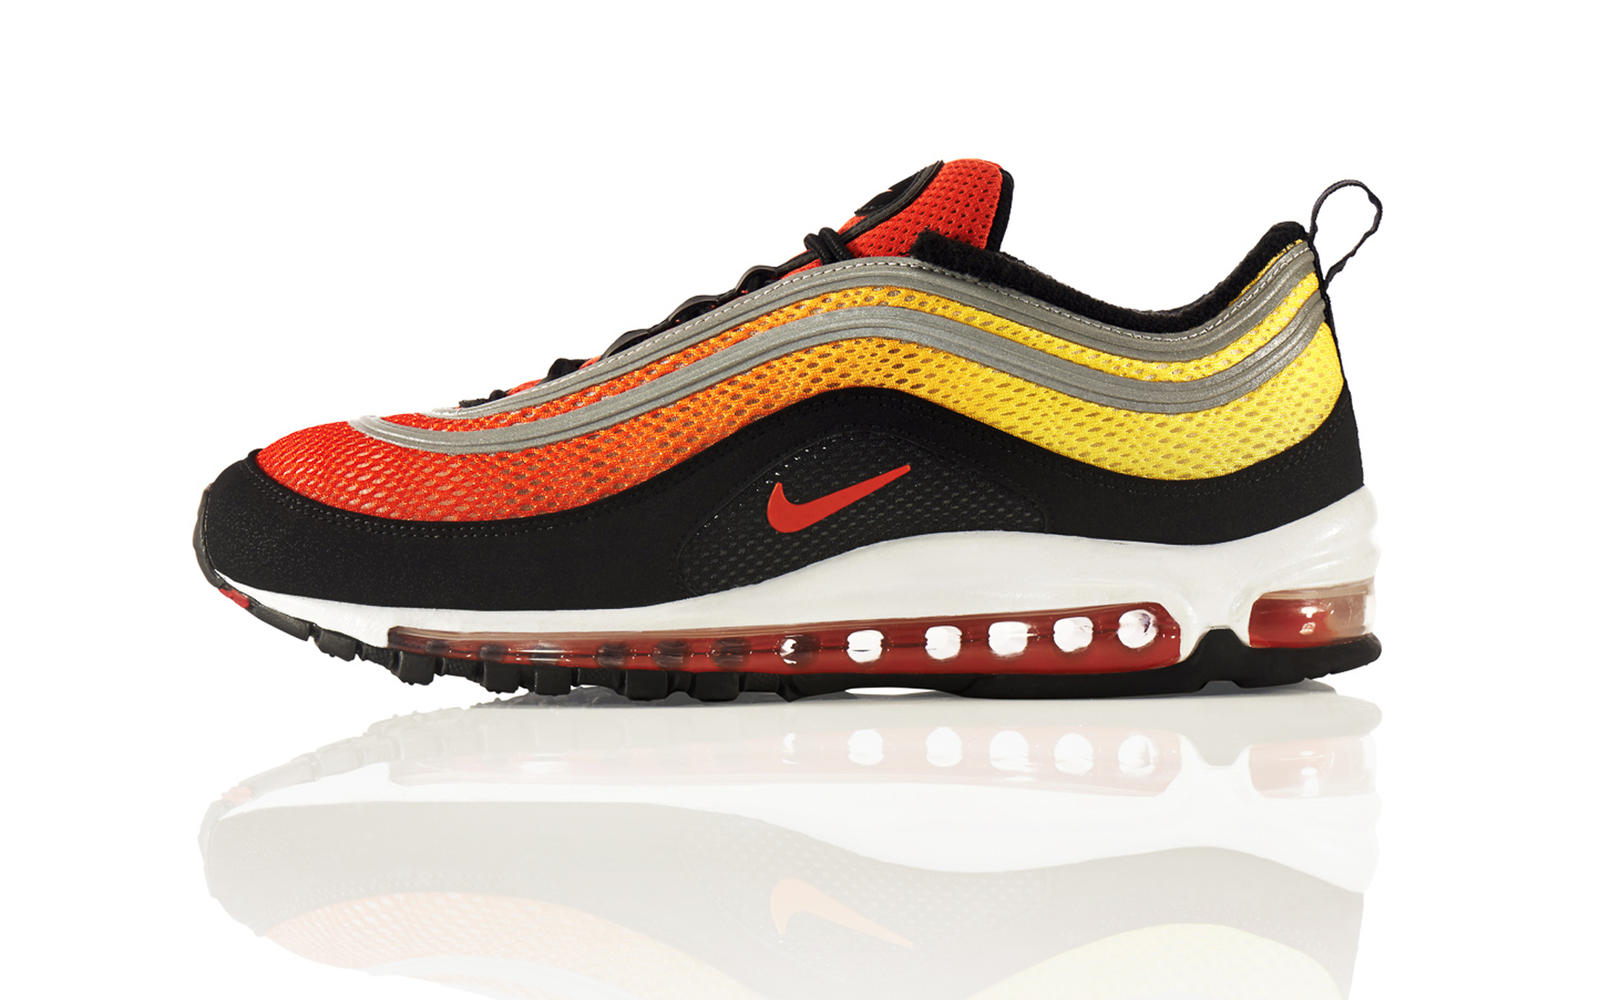 official store nike air max 97 sunset ebay 1ec6a 602b2